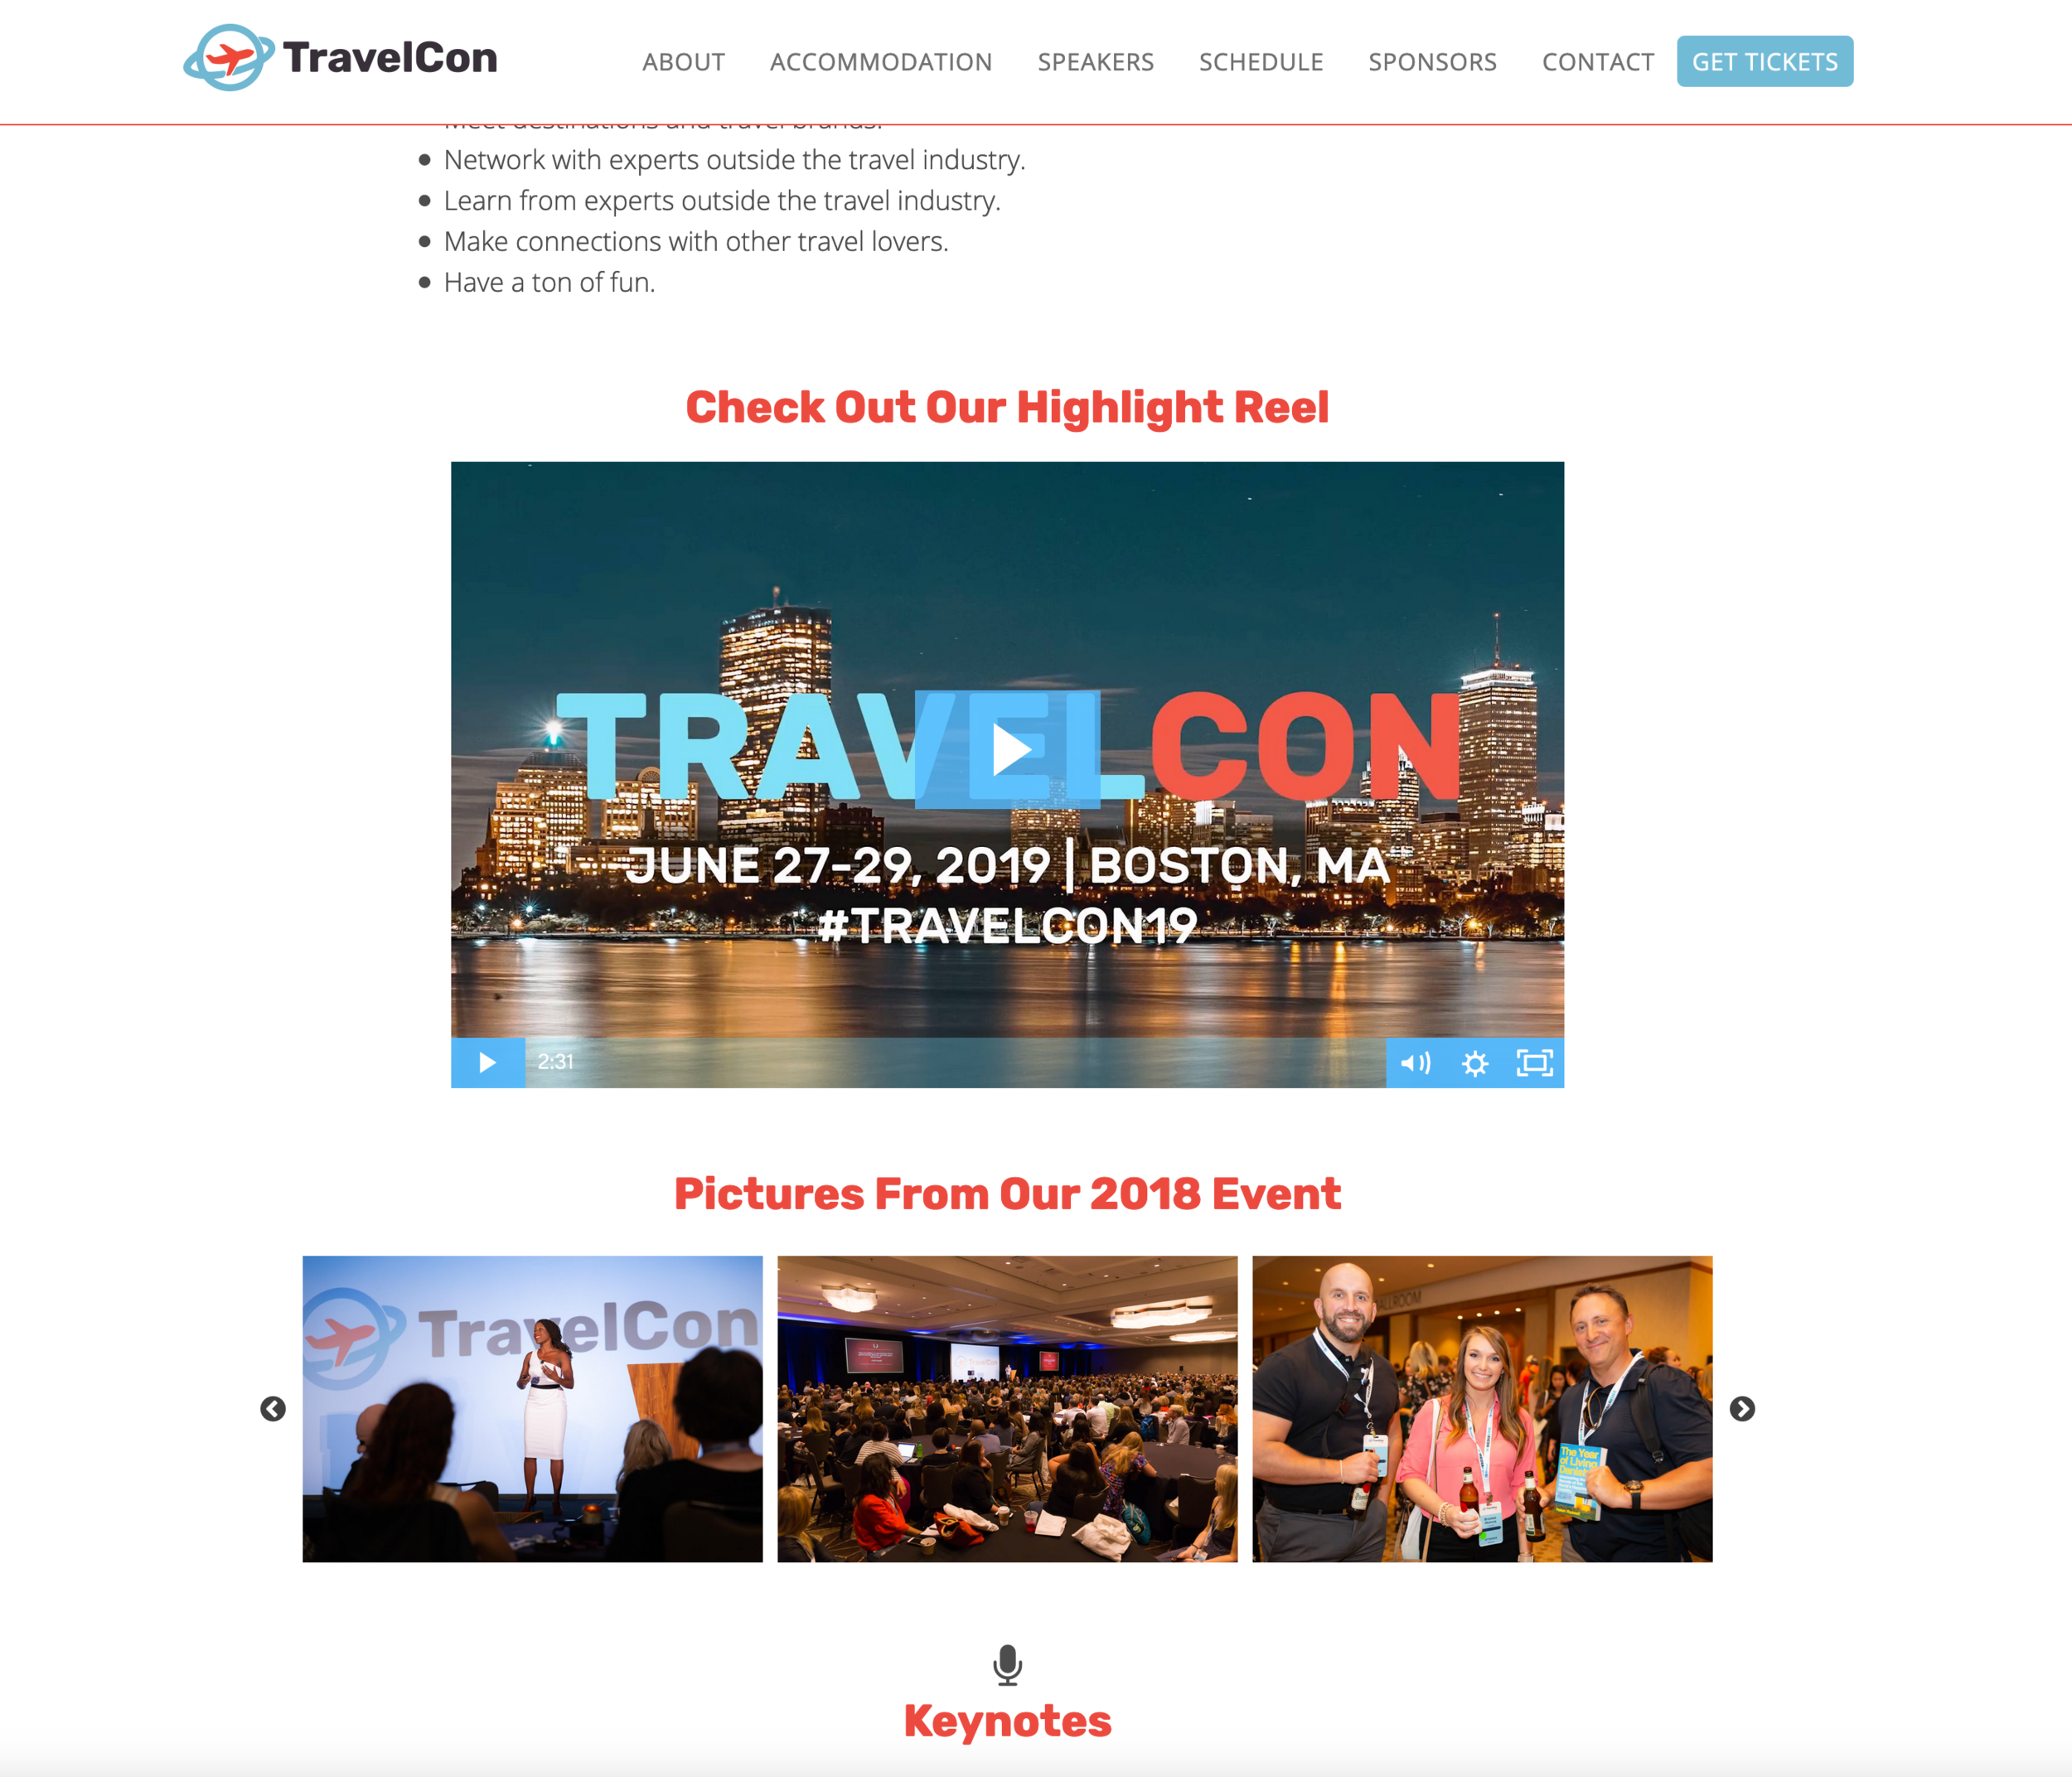 TravelCon Promotions